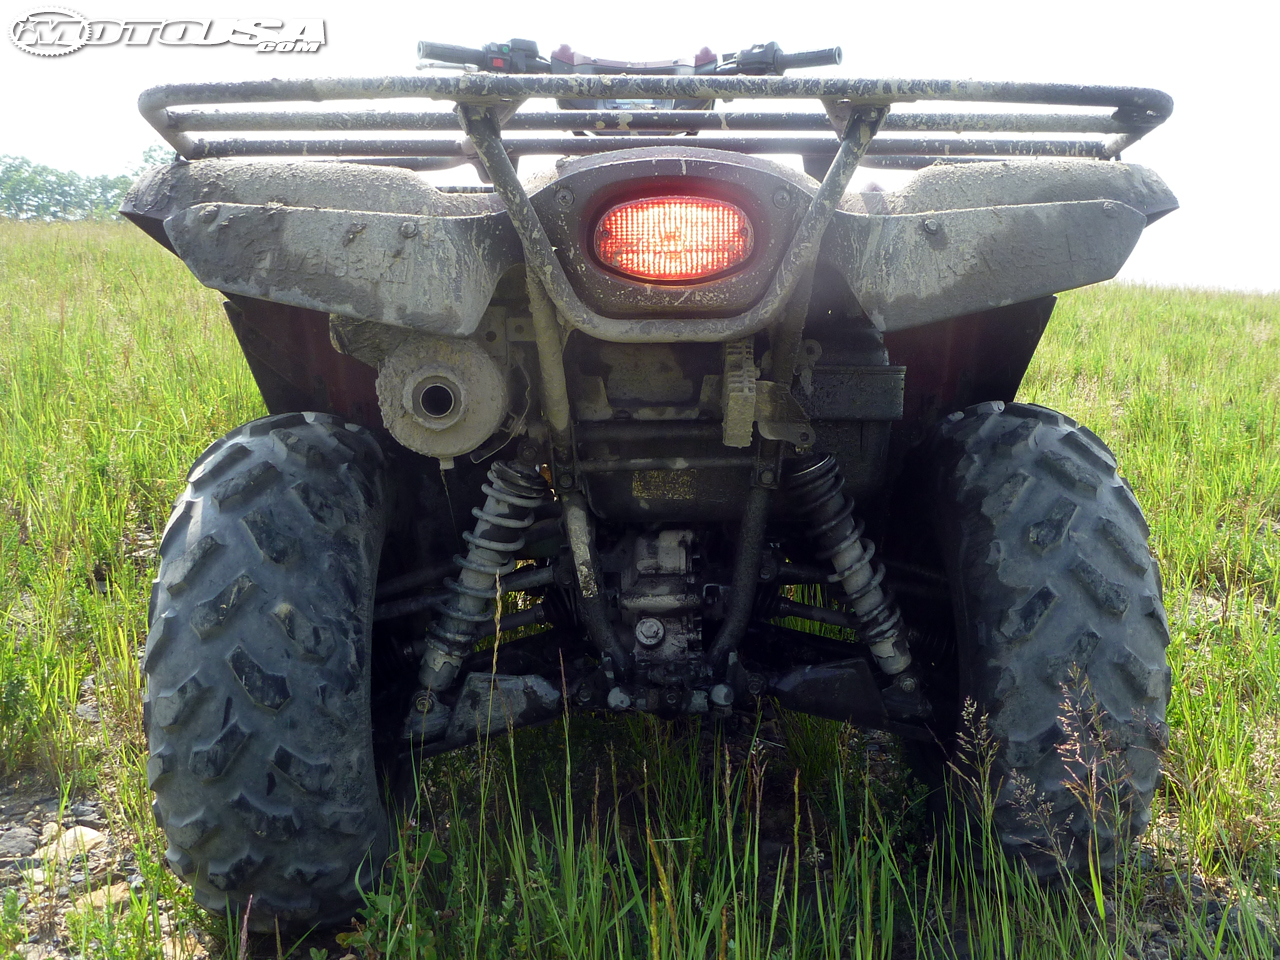 Kawasaki Brute Force 650 4x4 2011 images #86181